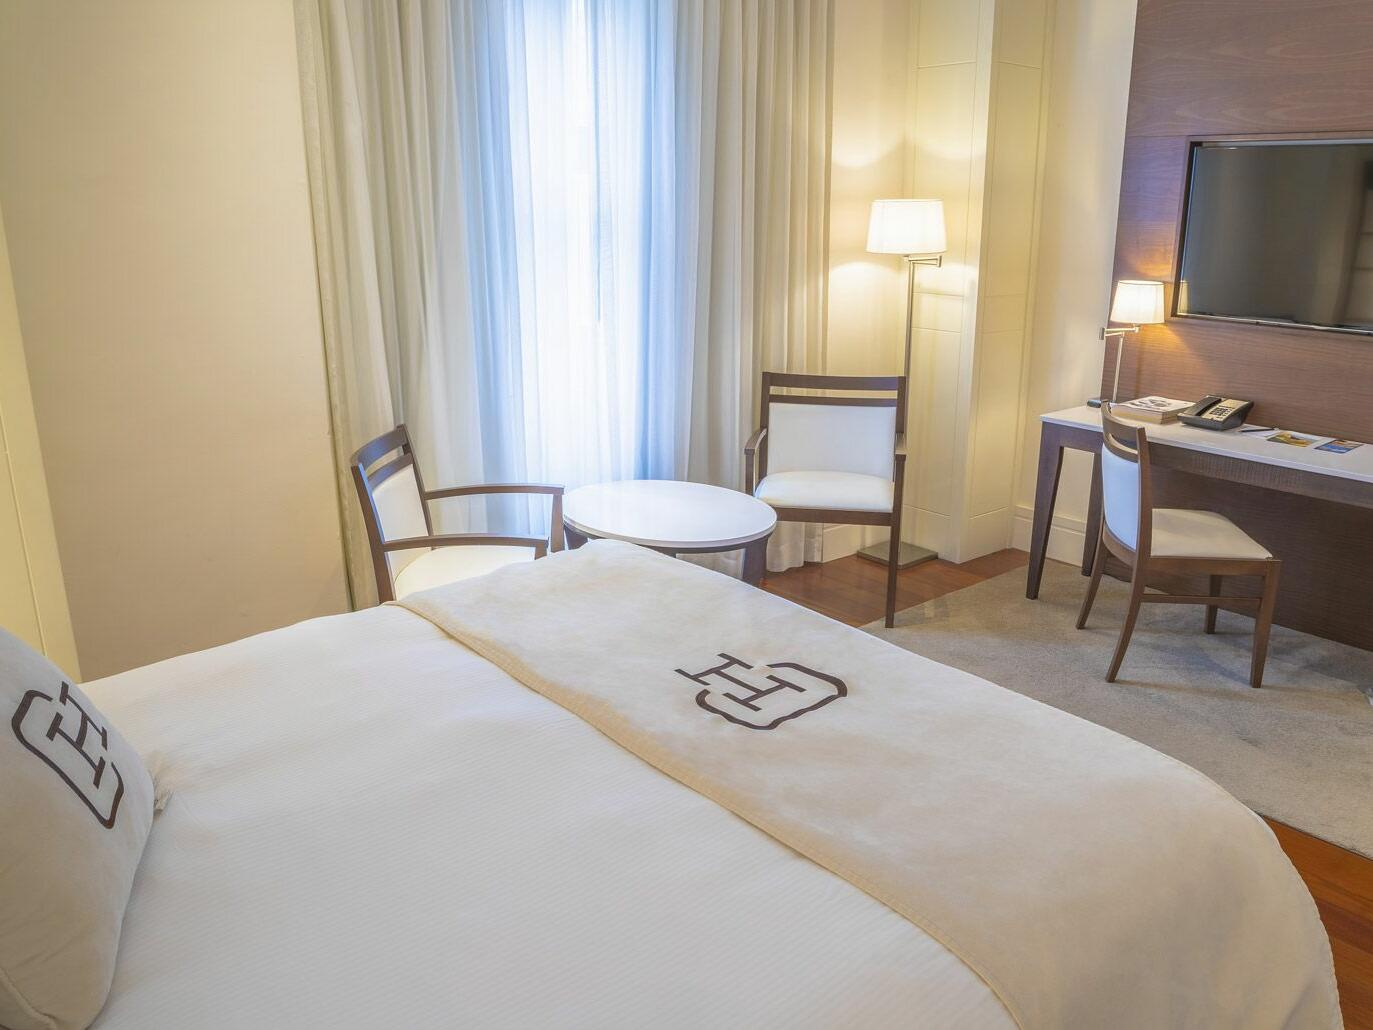 Deluxe Room with one bed at Central Hotel Panama